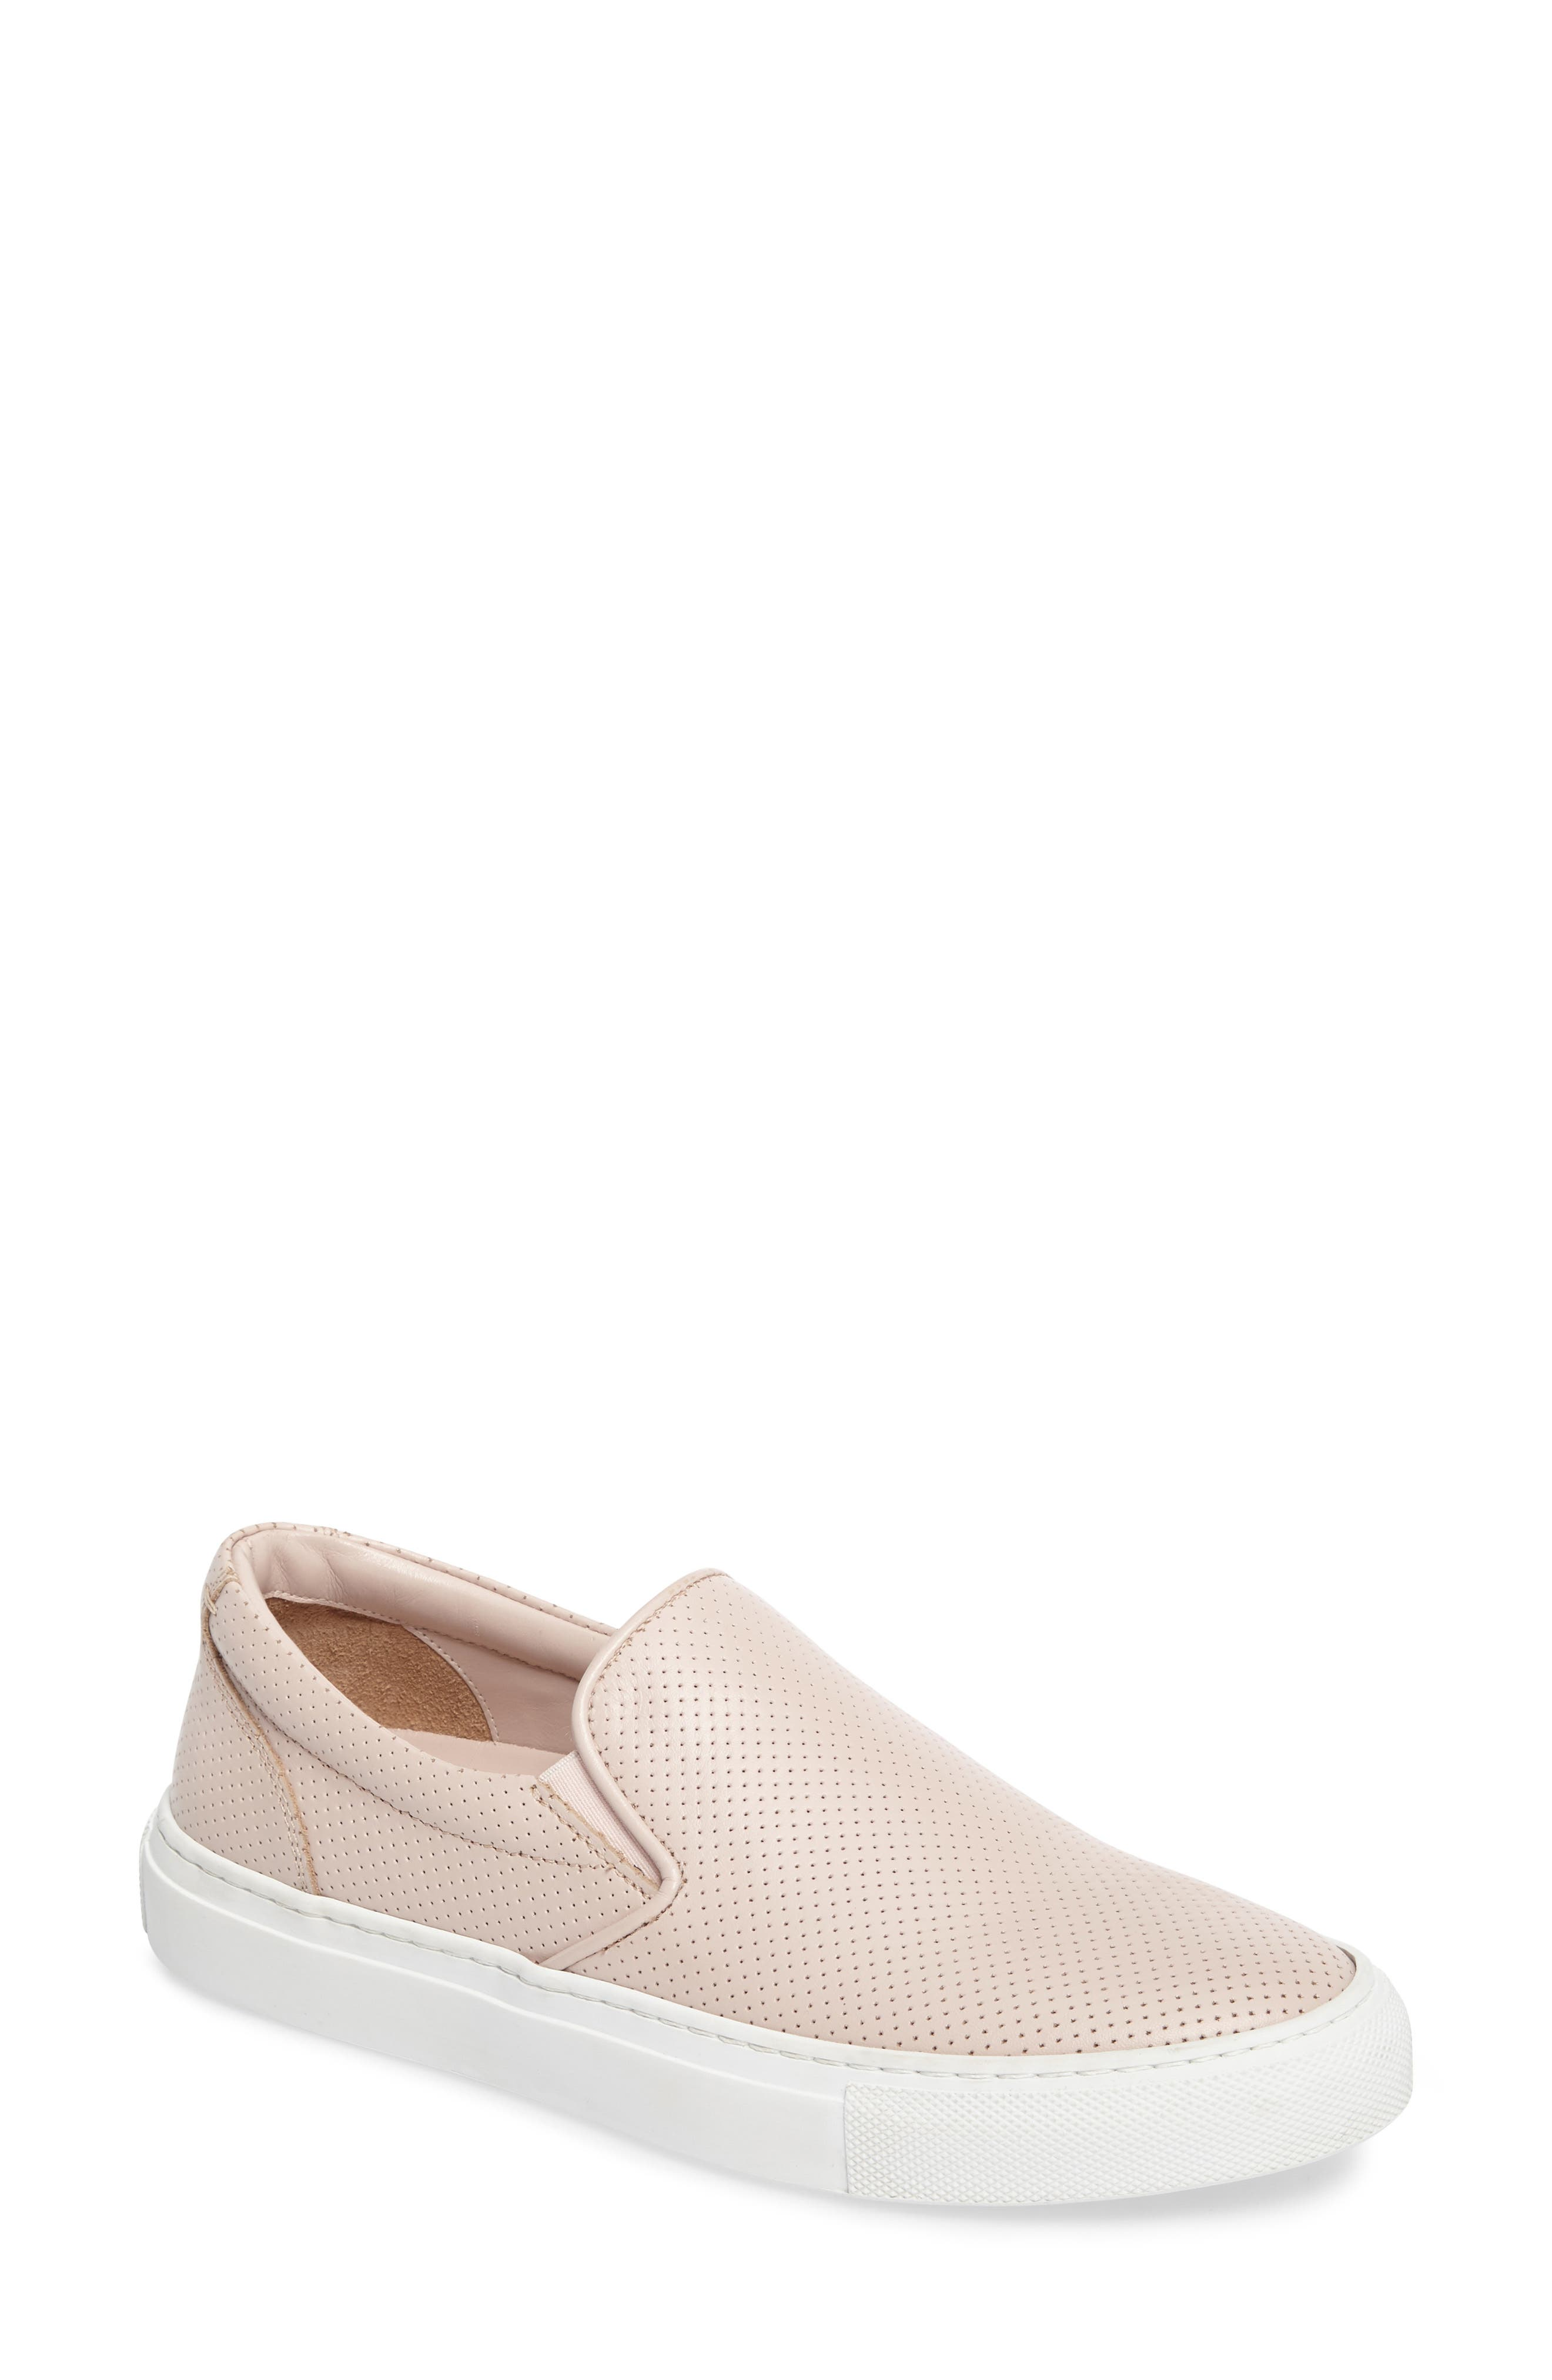 Wooster Slip-On Sneaker,                             Main thumbnail 1, color,                             Blush Perforated